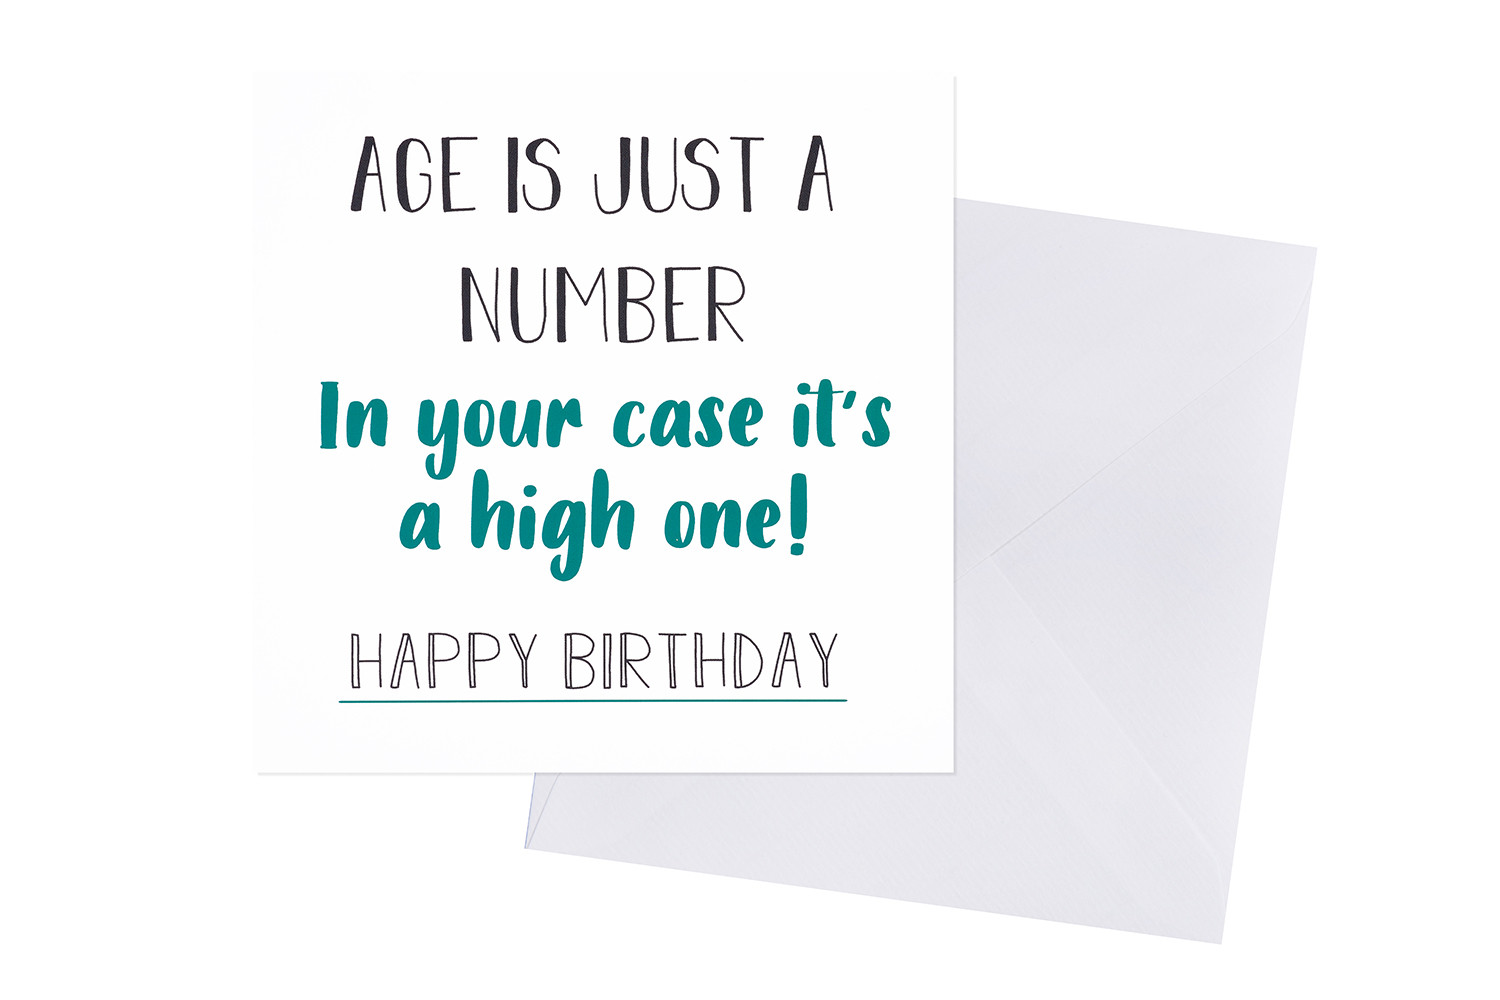 AGE IS JUST A NUMBER CARD